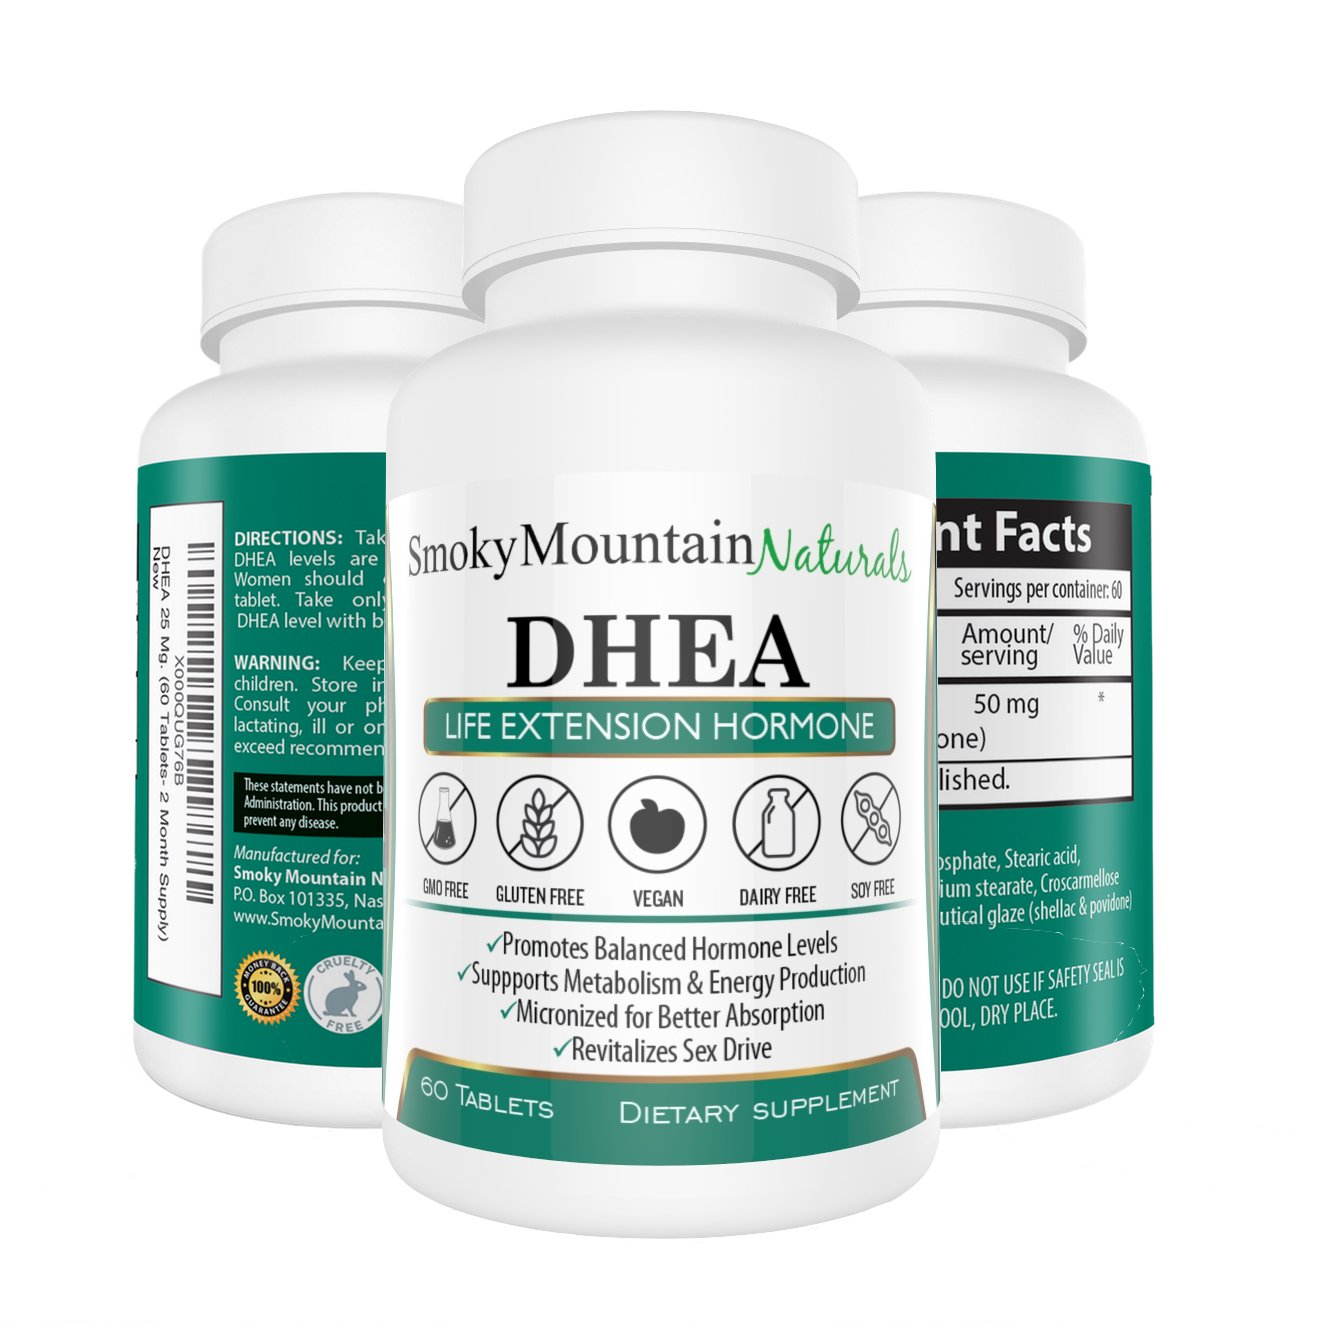 DHEA 50mg Extra Strength (2 Month Supply) Promotes Healthy Hormone Levels, Bone Strength, Sexual Functions. Soy-Free, Dairy-Free, Non-GMO and in Veggie Capsule